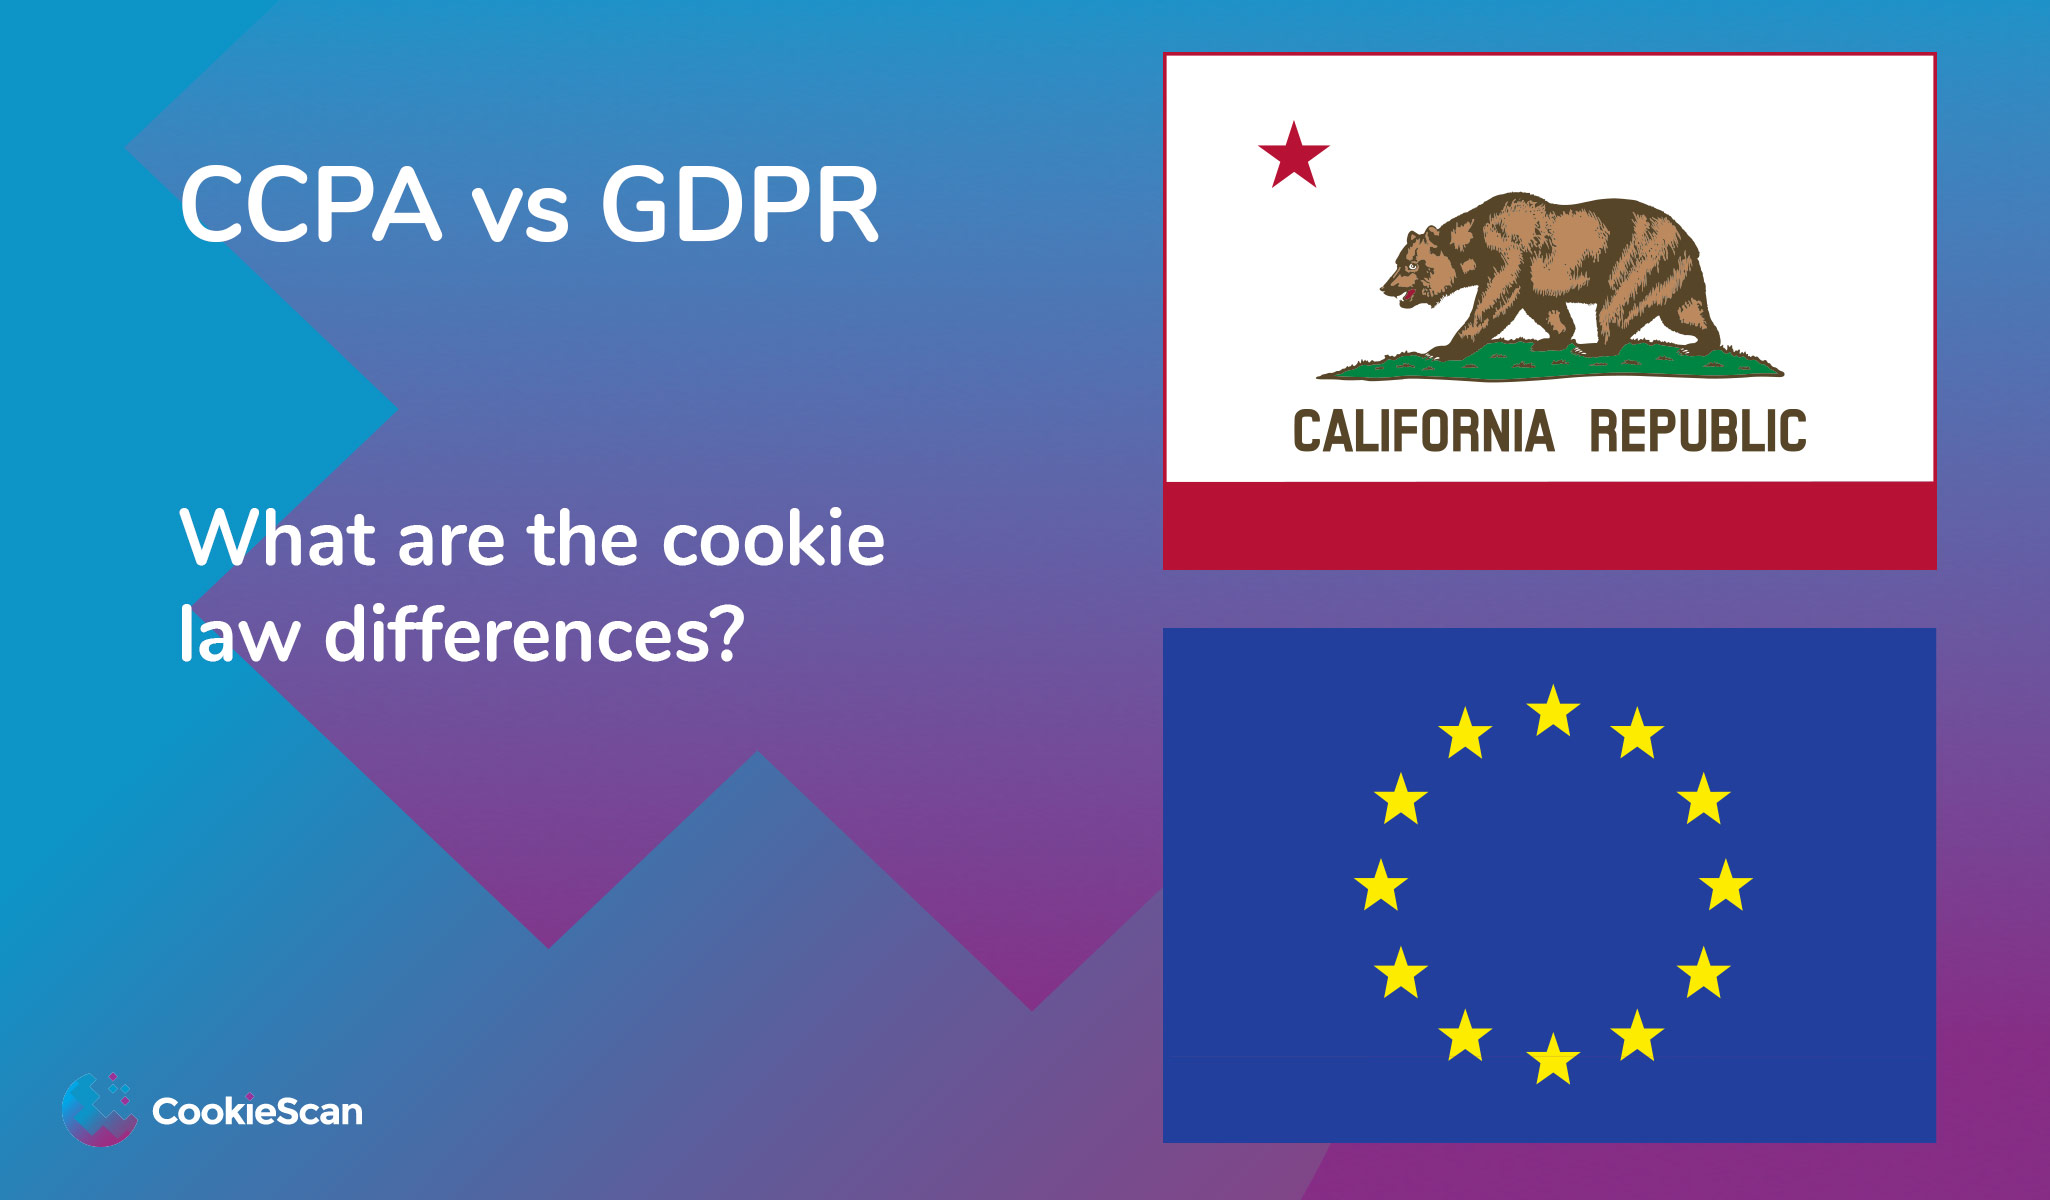 ccpa vs gdpr cookie law differences